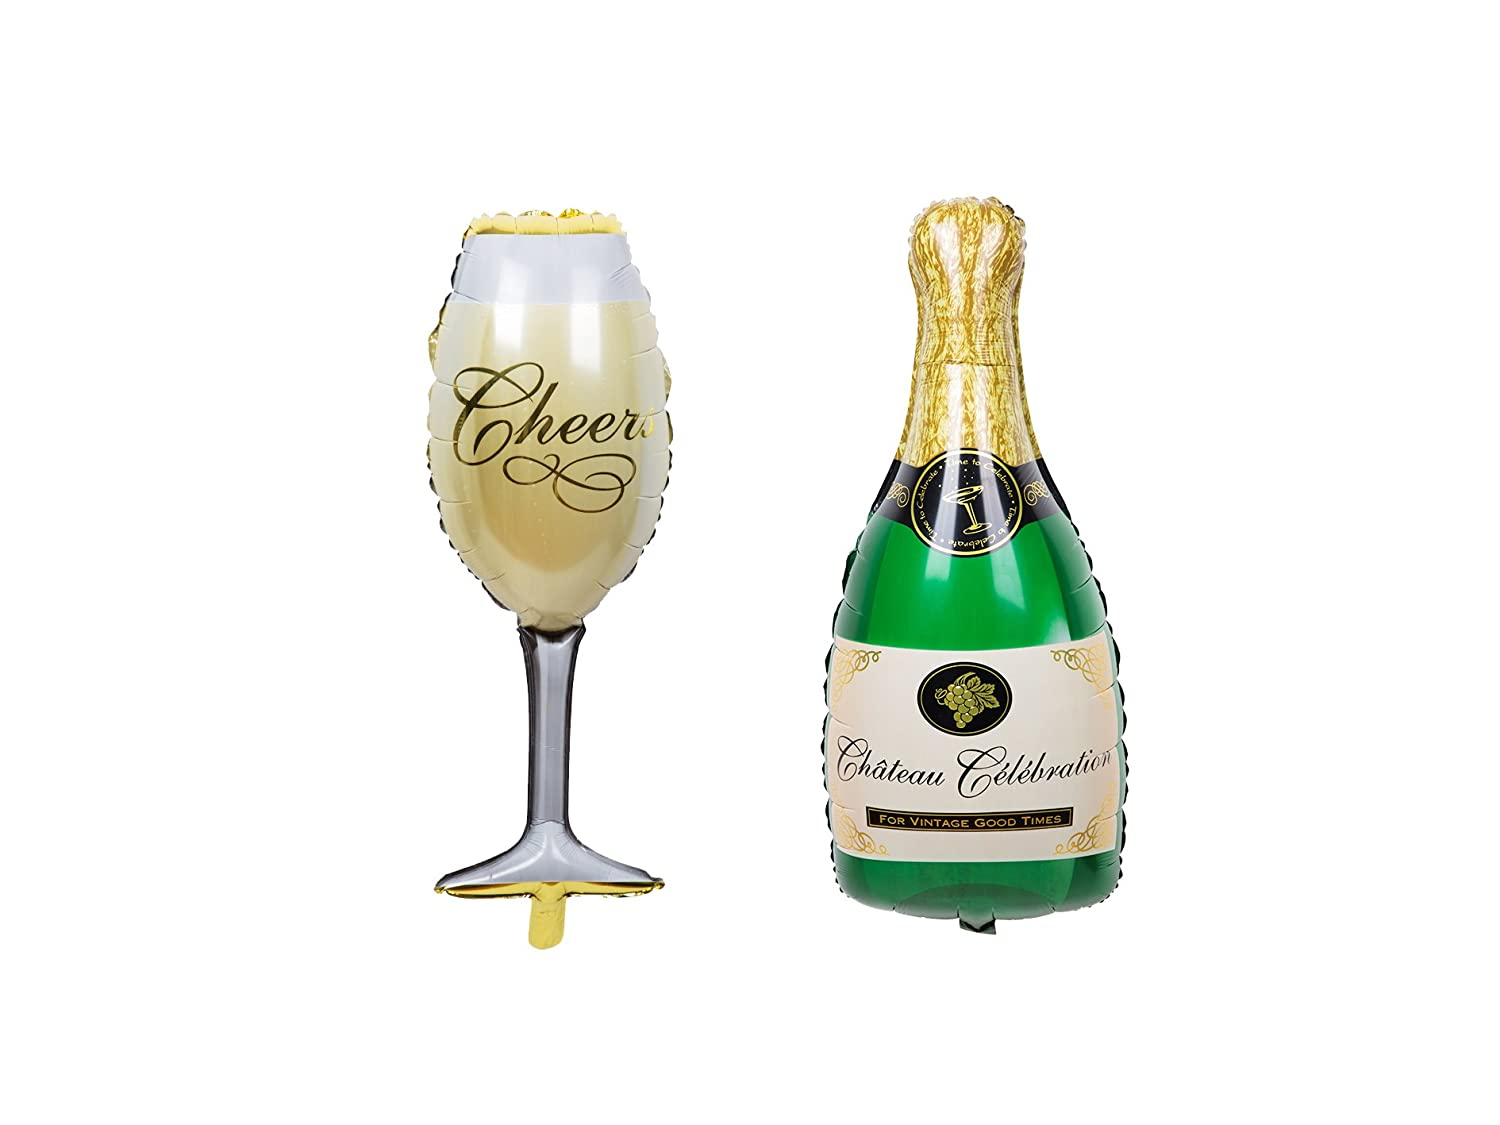 Party Balloons Champagne Bottle Goblet Balloons For Party,Anniversary,Engagement Decorations